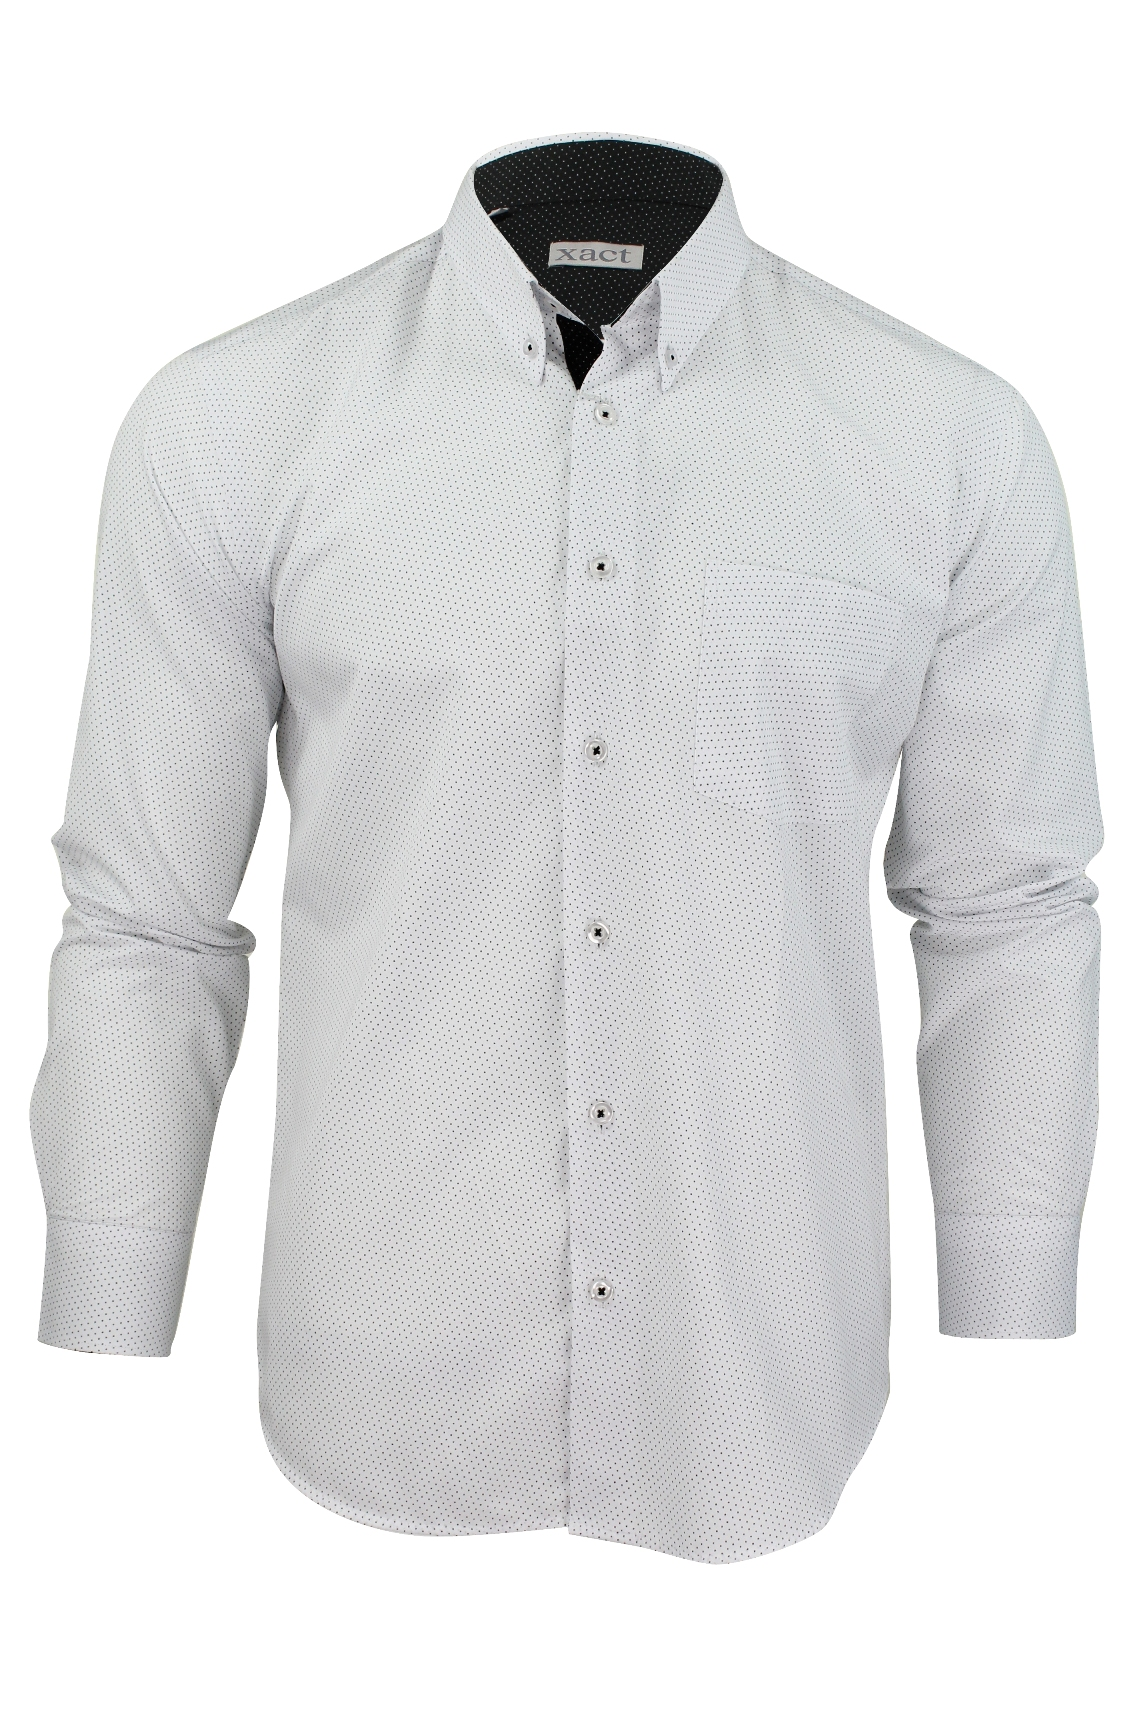 Mens long sleeved shirt by xact clothing mini polka dot ebay for Mens polka dot shirt short sleeve